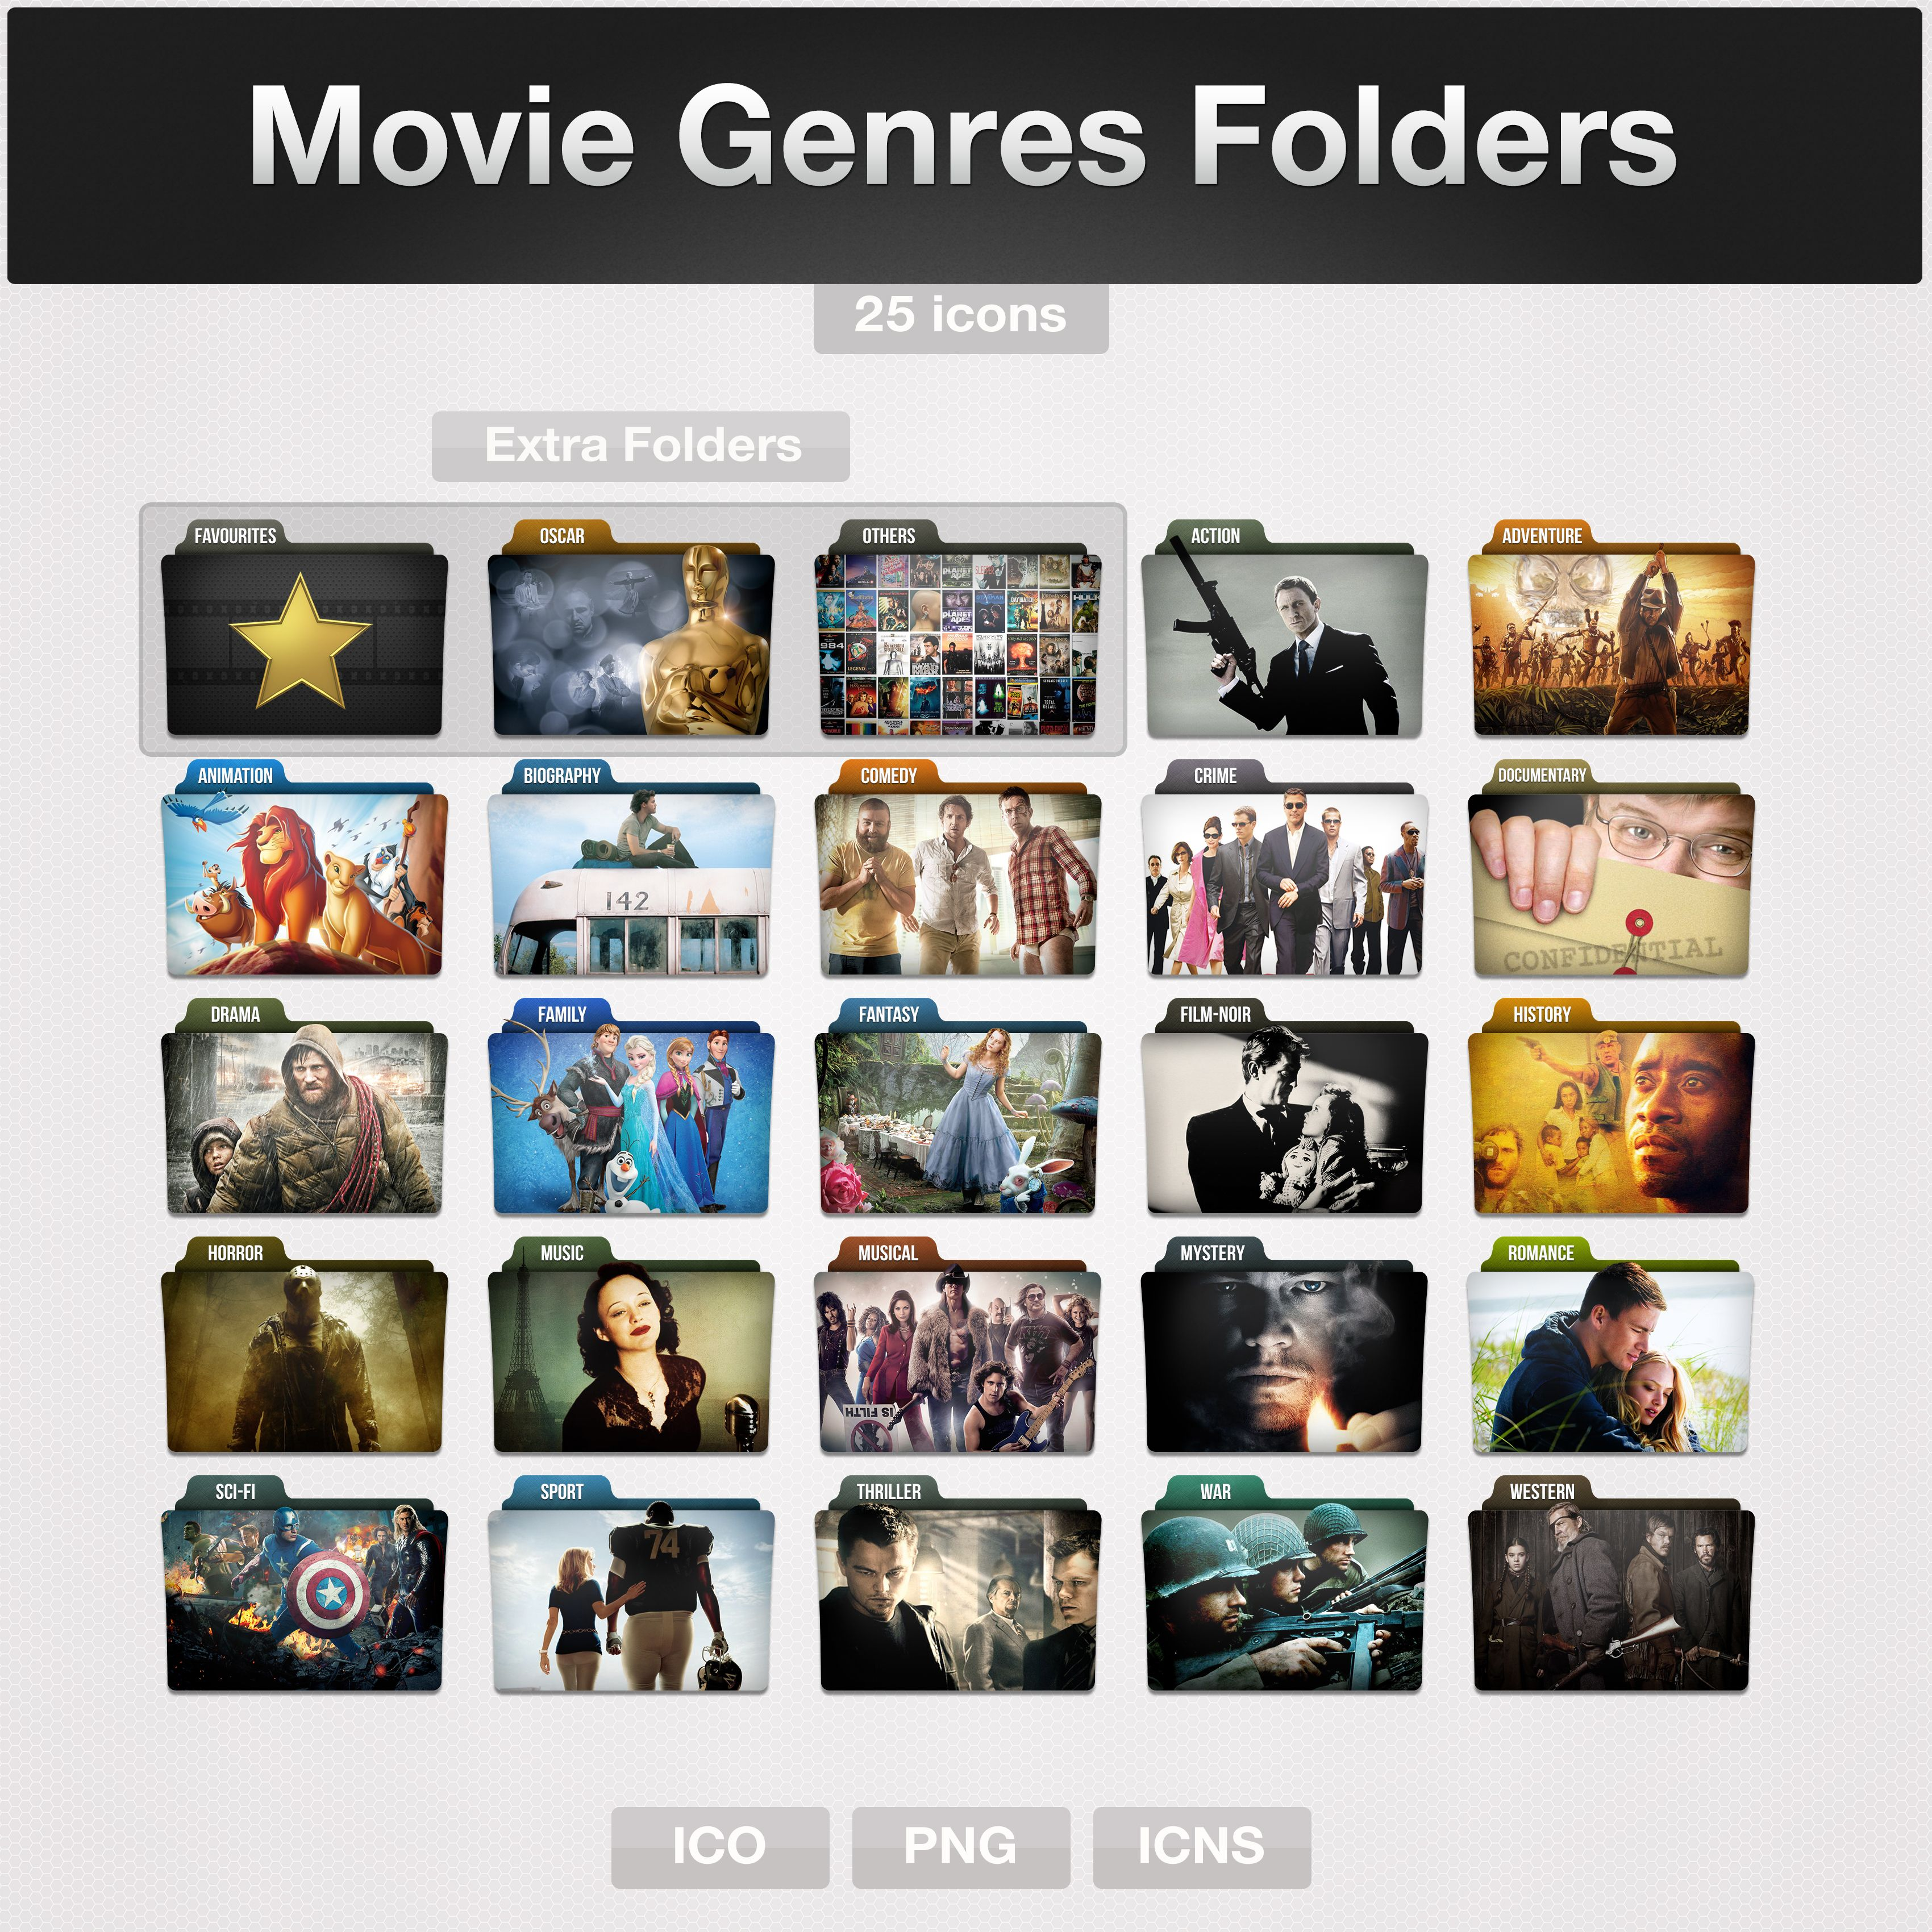 Movie Genres Folders (icons) By Limaviantart On @deviantart